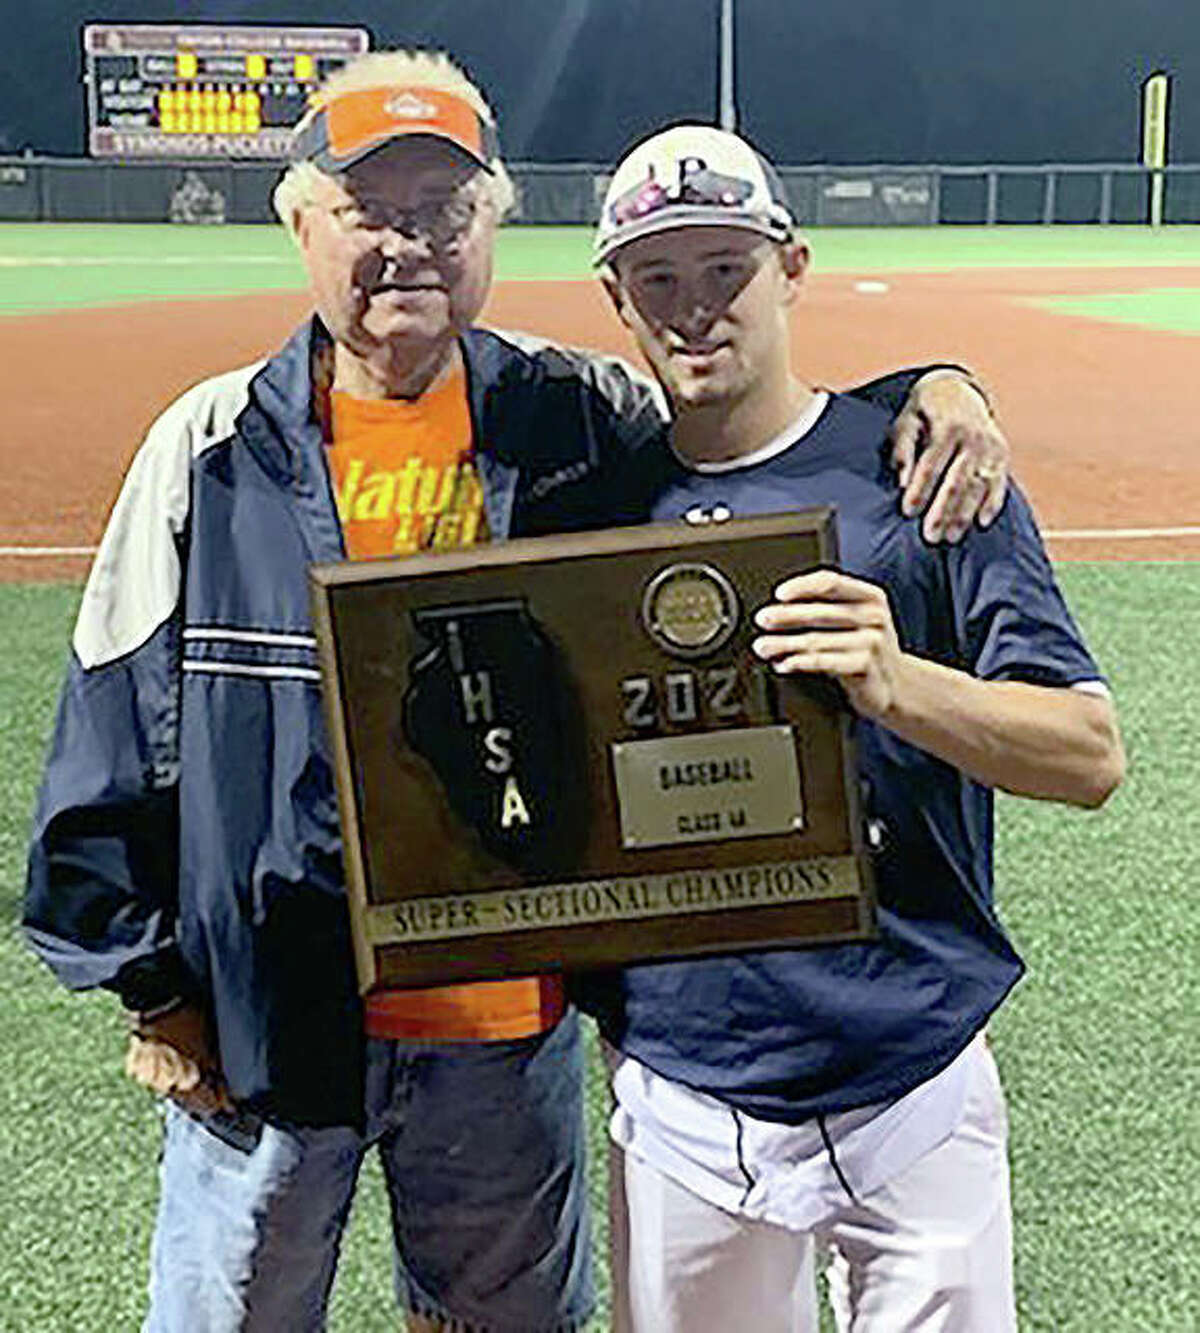 Wood River's Don Cobb, left, and his grandson, Lake Park High School sophomore catcher Danny Rollins following the IHSA Class 4A state baseball championship game last week in Joliet. Rollins' team finished second in the state, just like his grandfather's East Alton-Wood River High School team did 60 years ago.